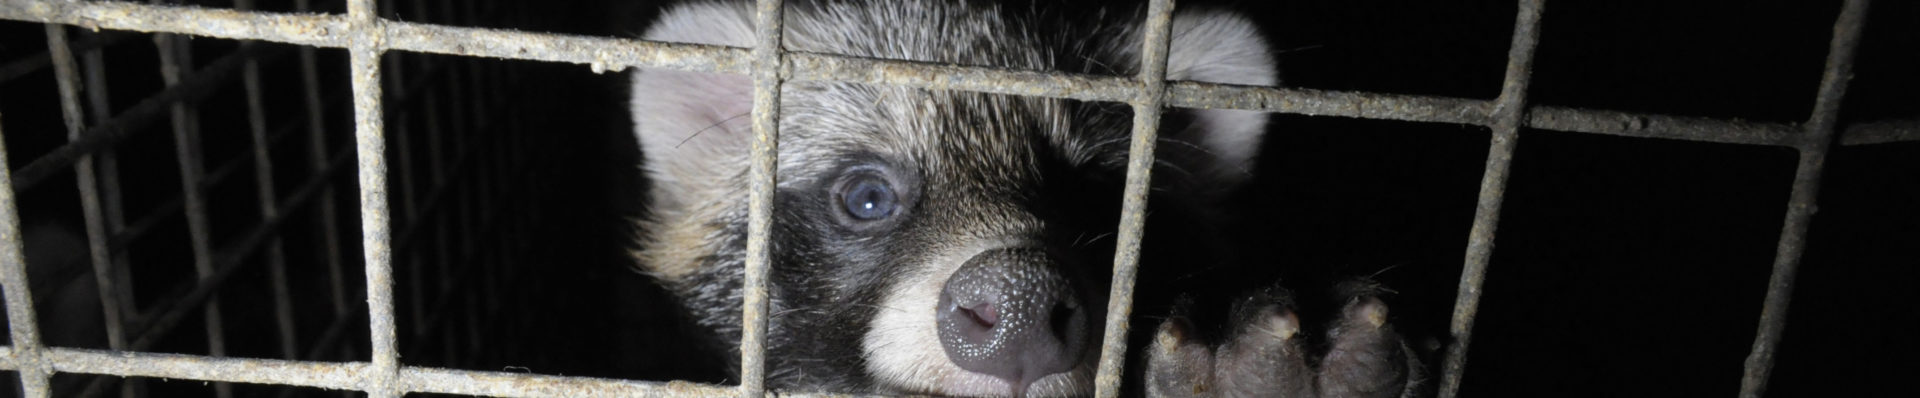 Estonian MPs present a bill to ban fur farming